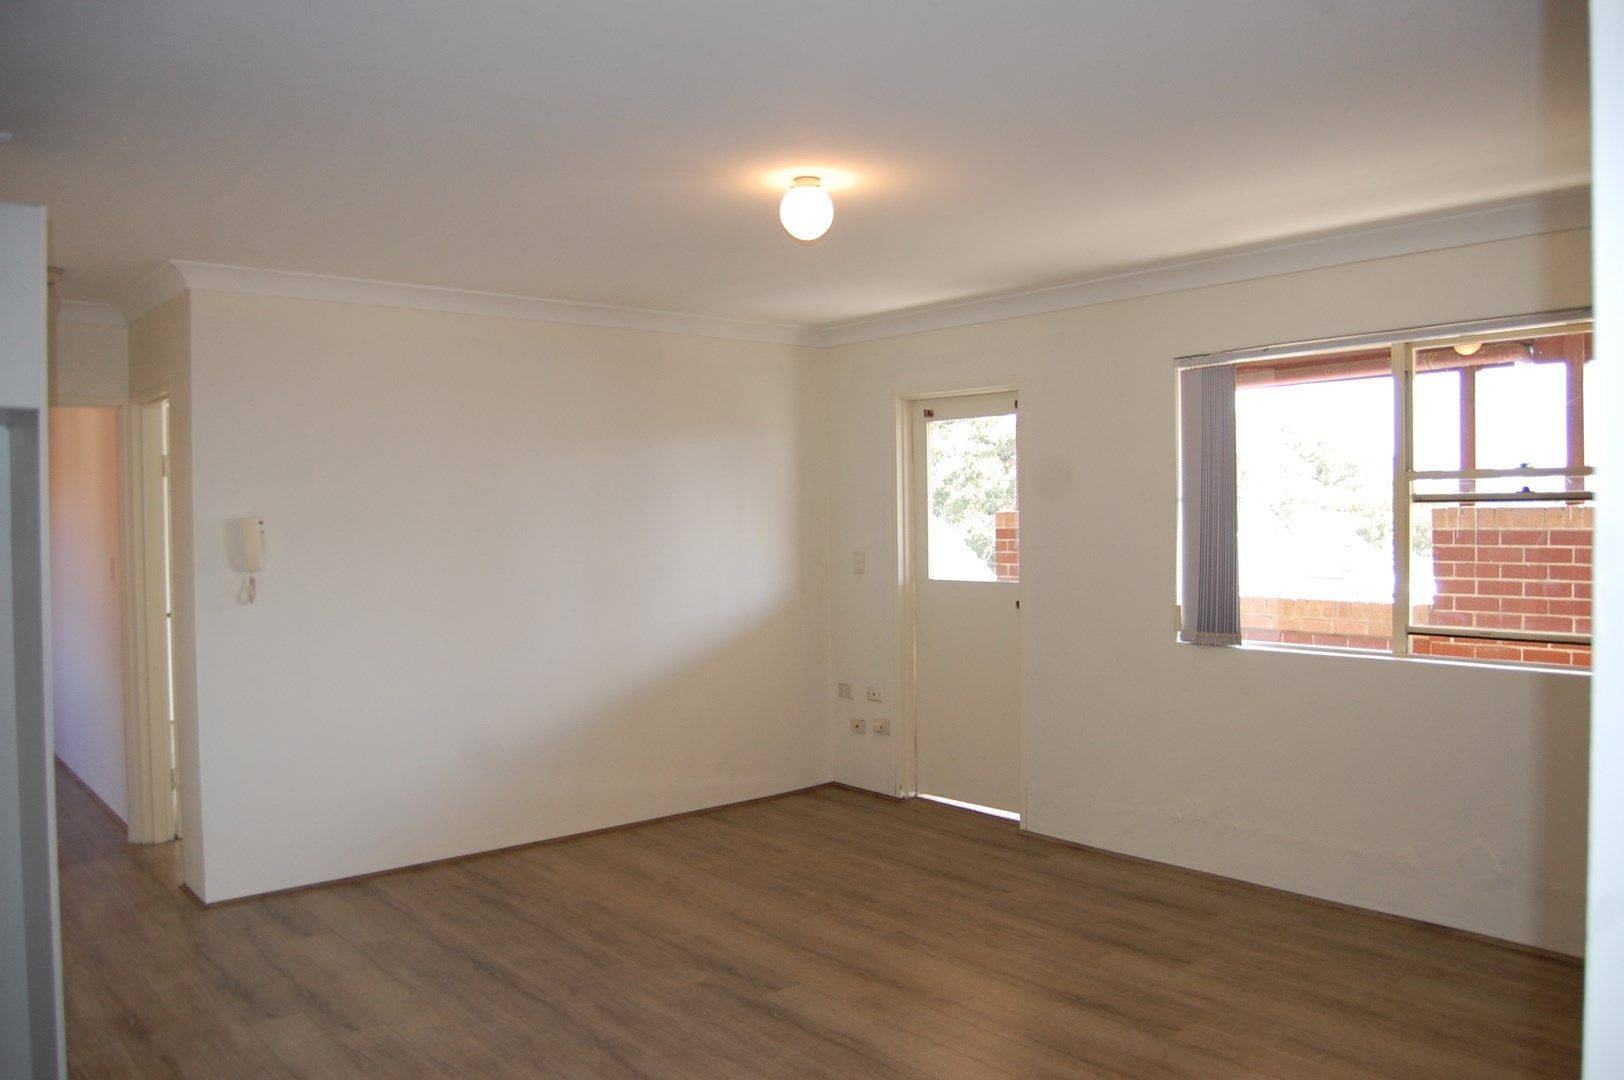 16/501 King Street, Newtown NSW 2042, Image 0